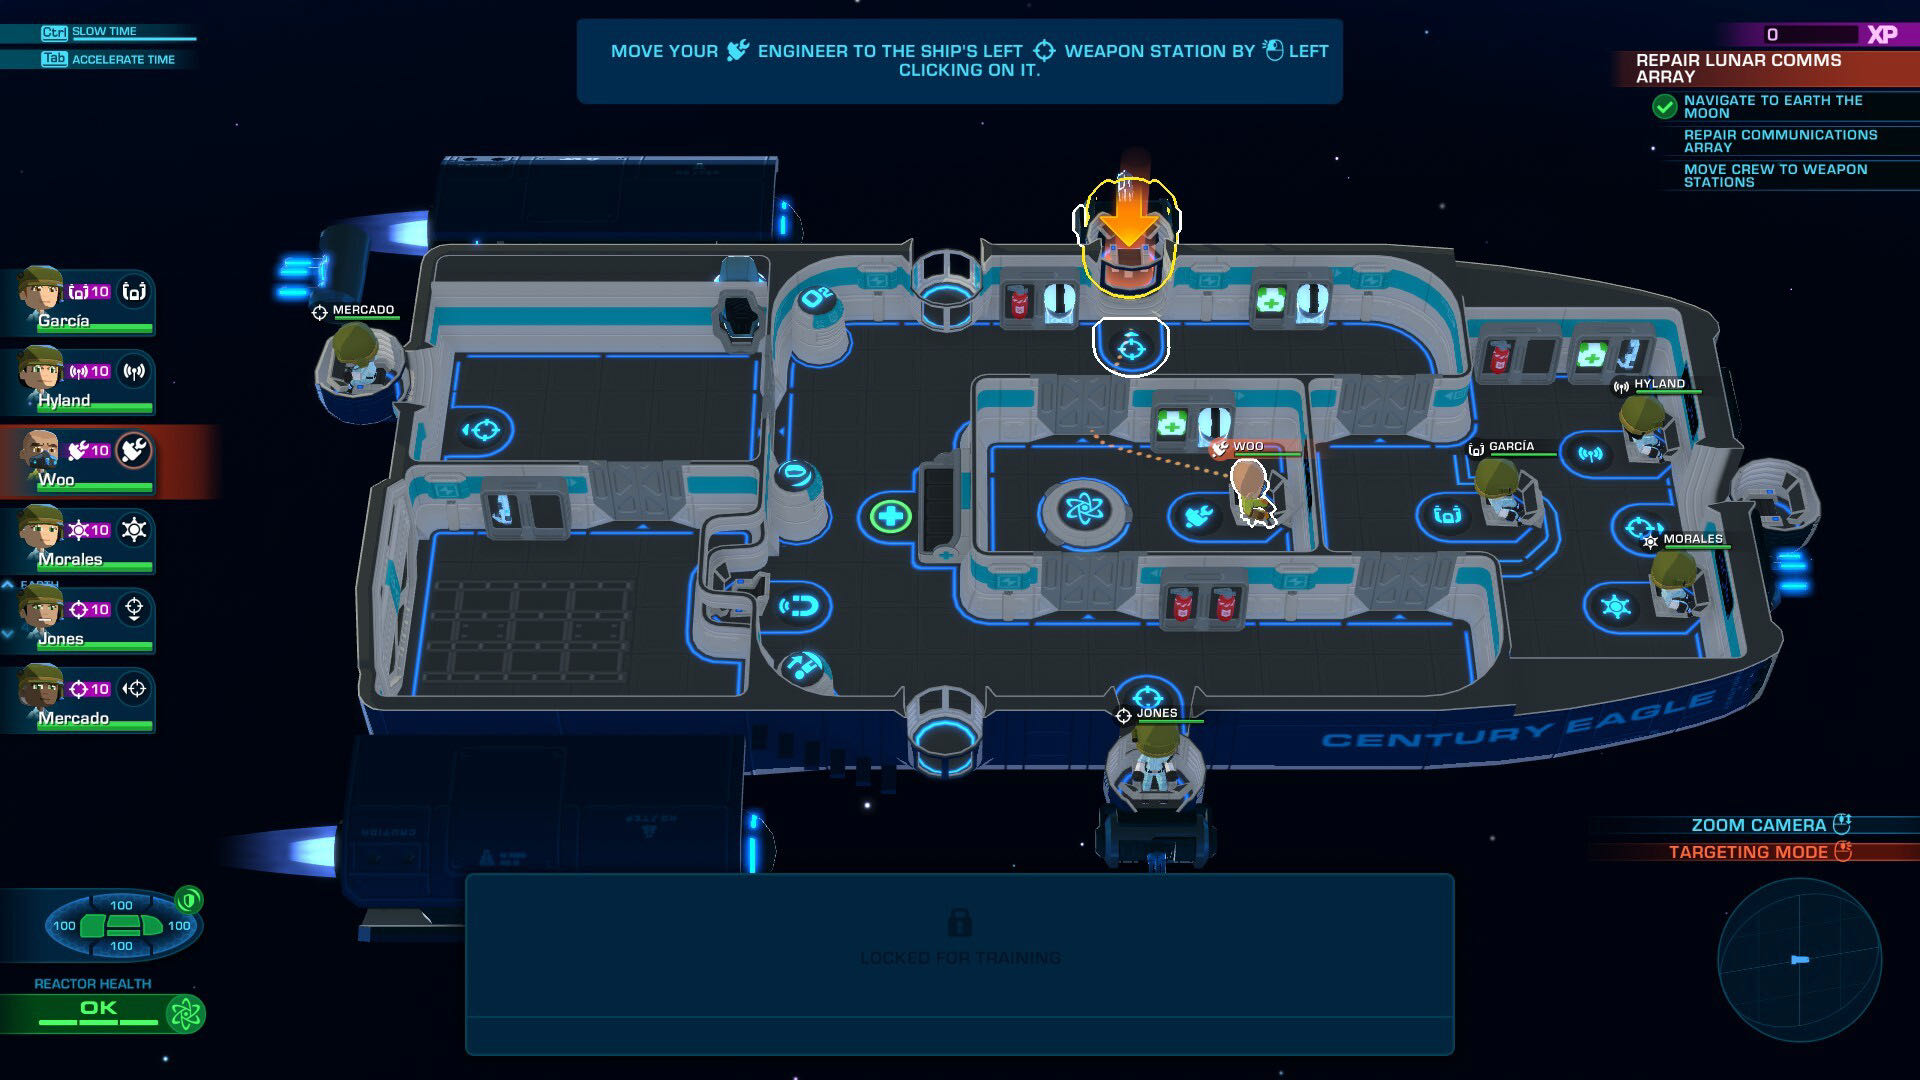 A map view from Space Crew, showing the layout of your ship with markers for your crew members.